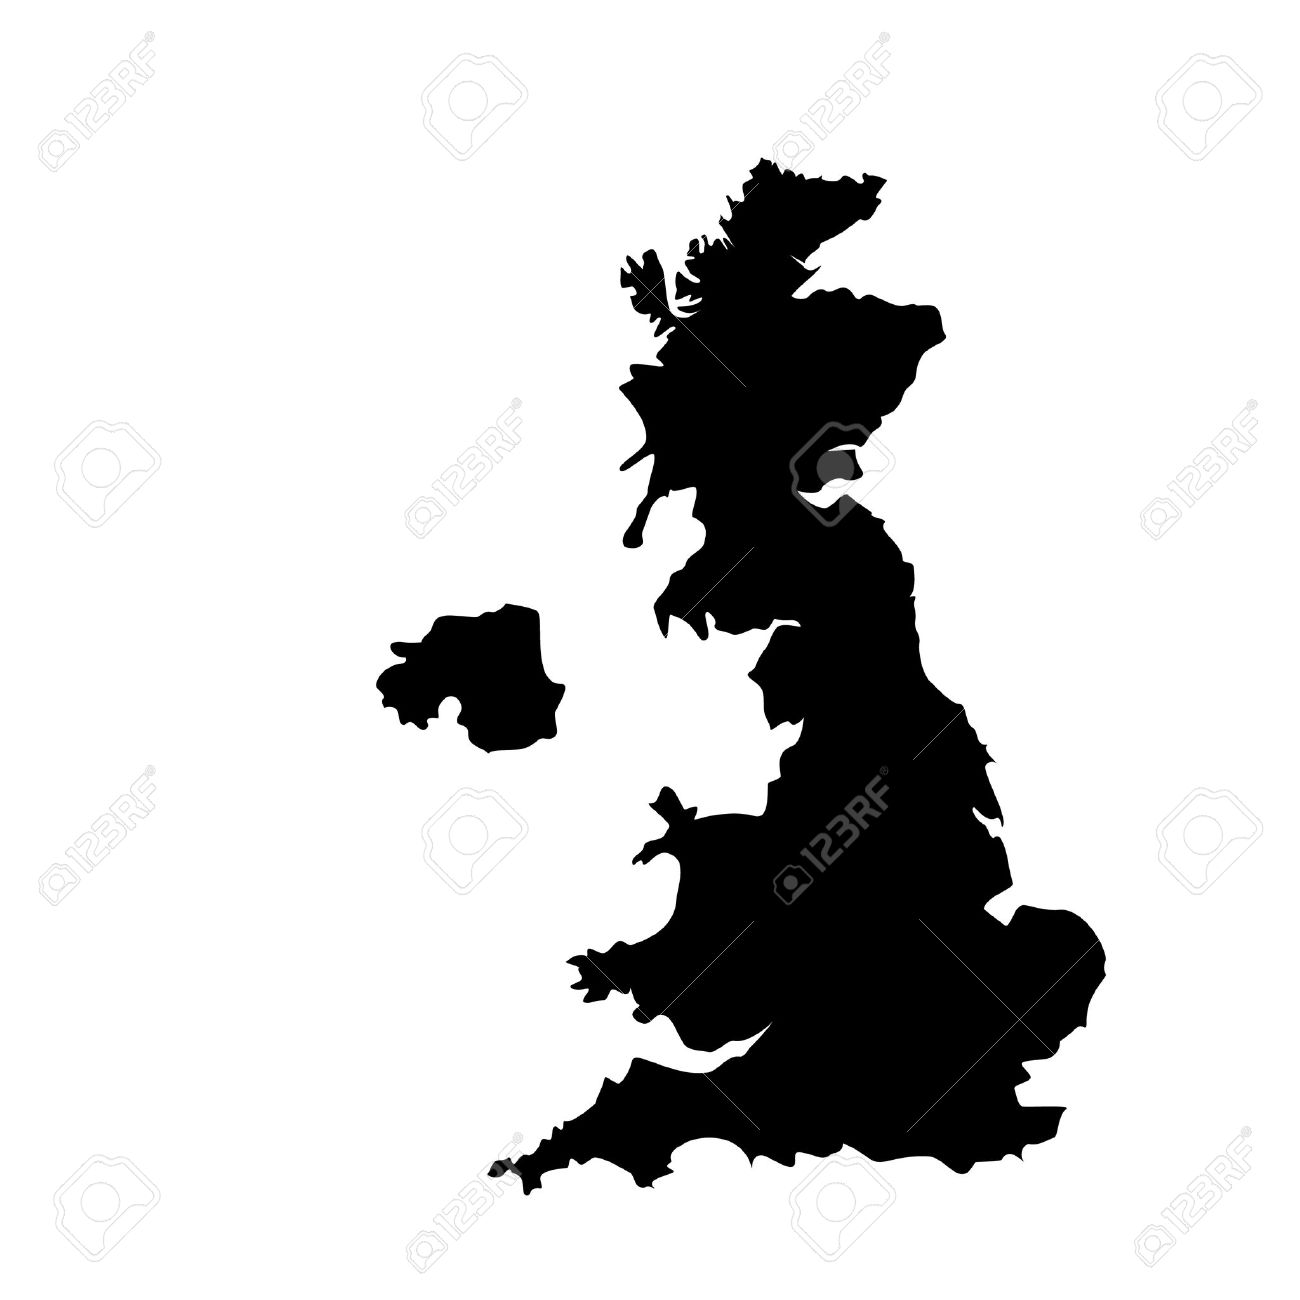 uk map stock photos u0026 pictures royalty free uk map images and